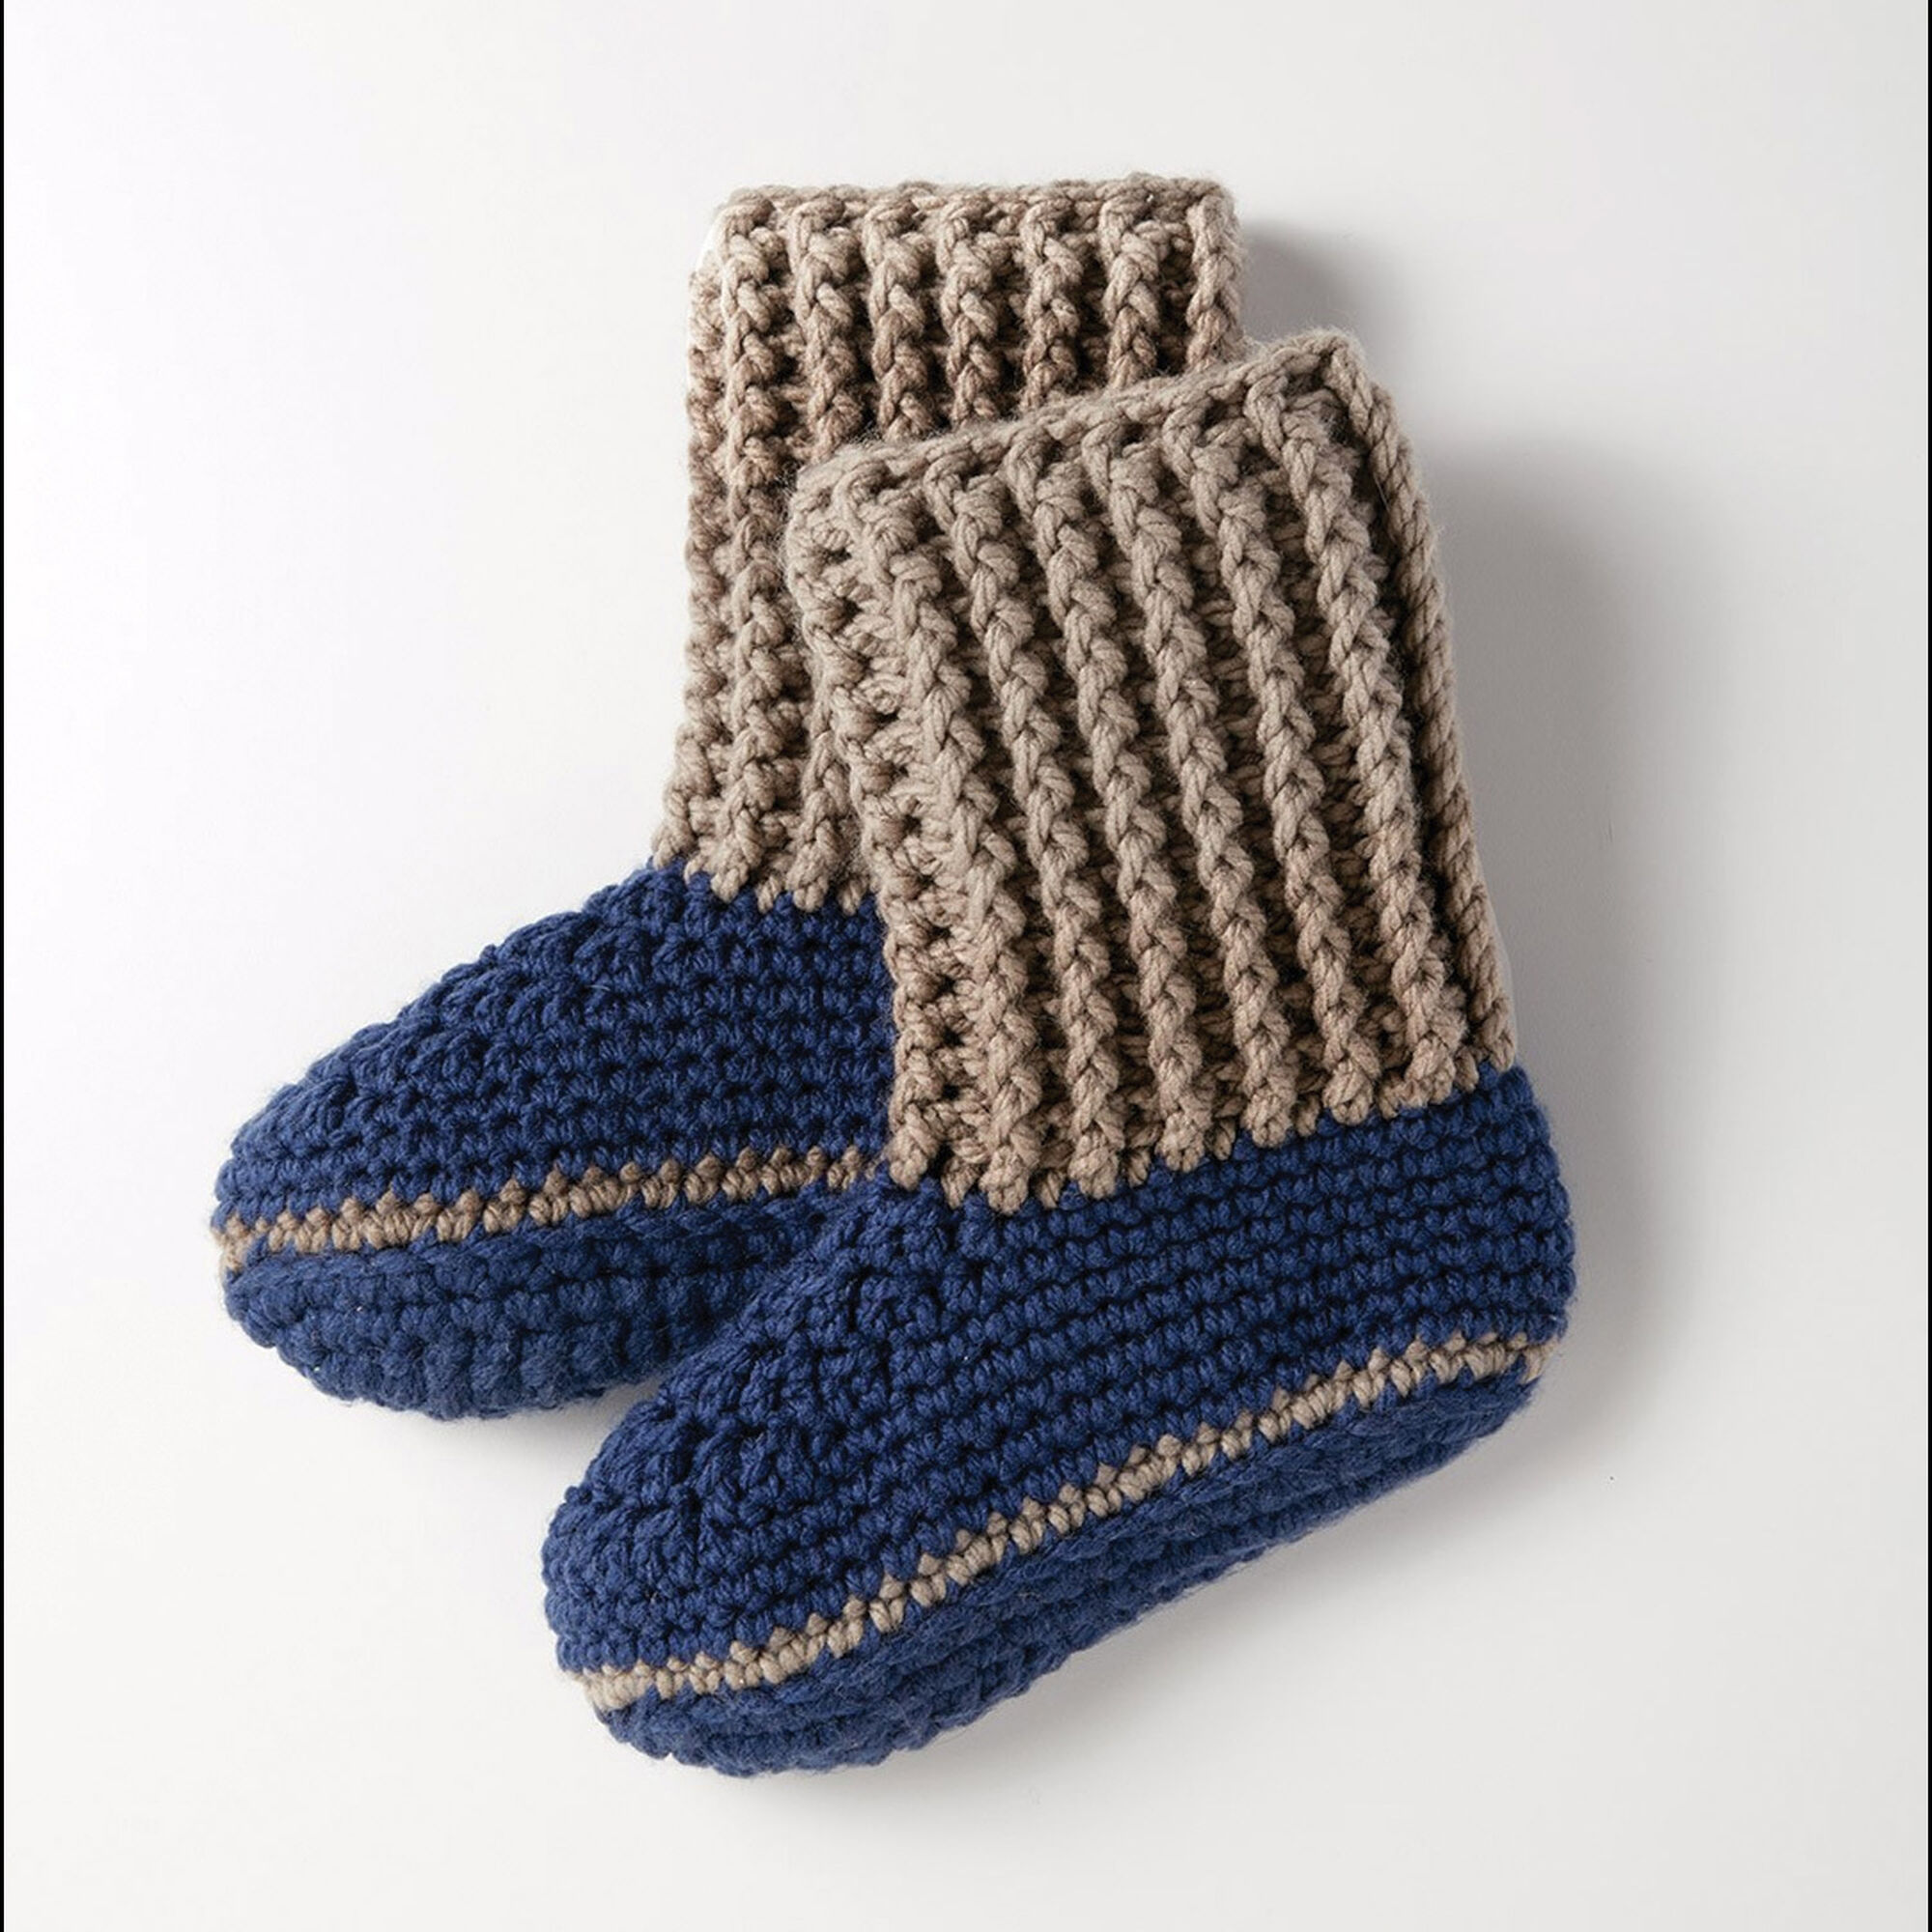 Bernat Slipper Socks